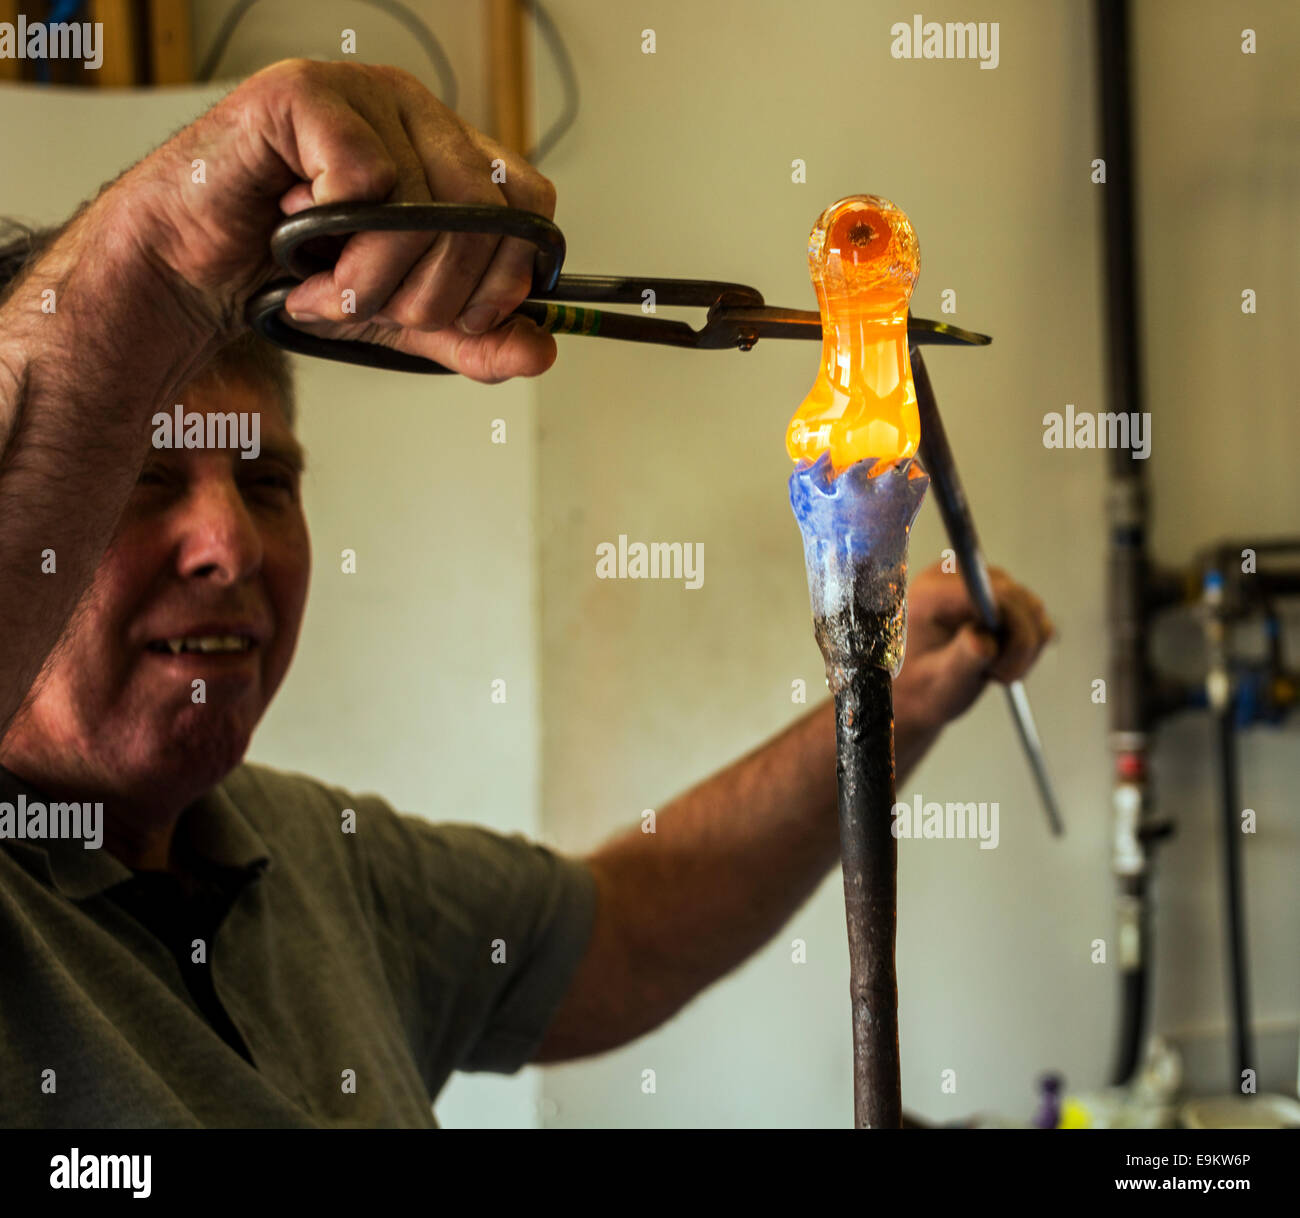 A highly skilled craftsman adds molten glass to a paperweight in production, judging the exact amount from years Stock Photo